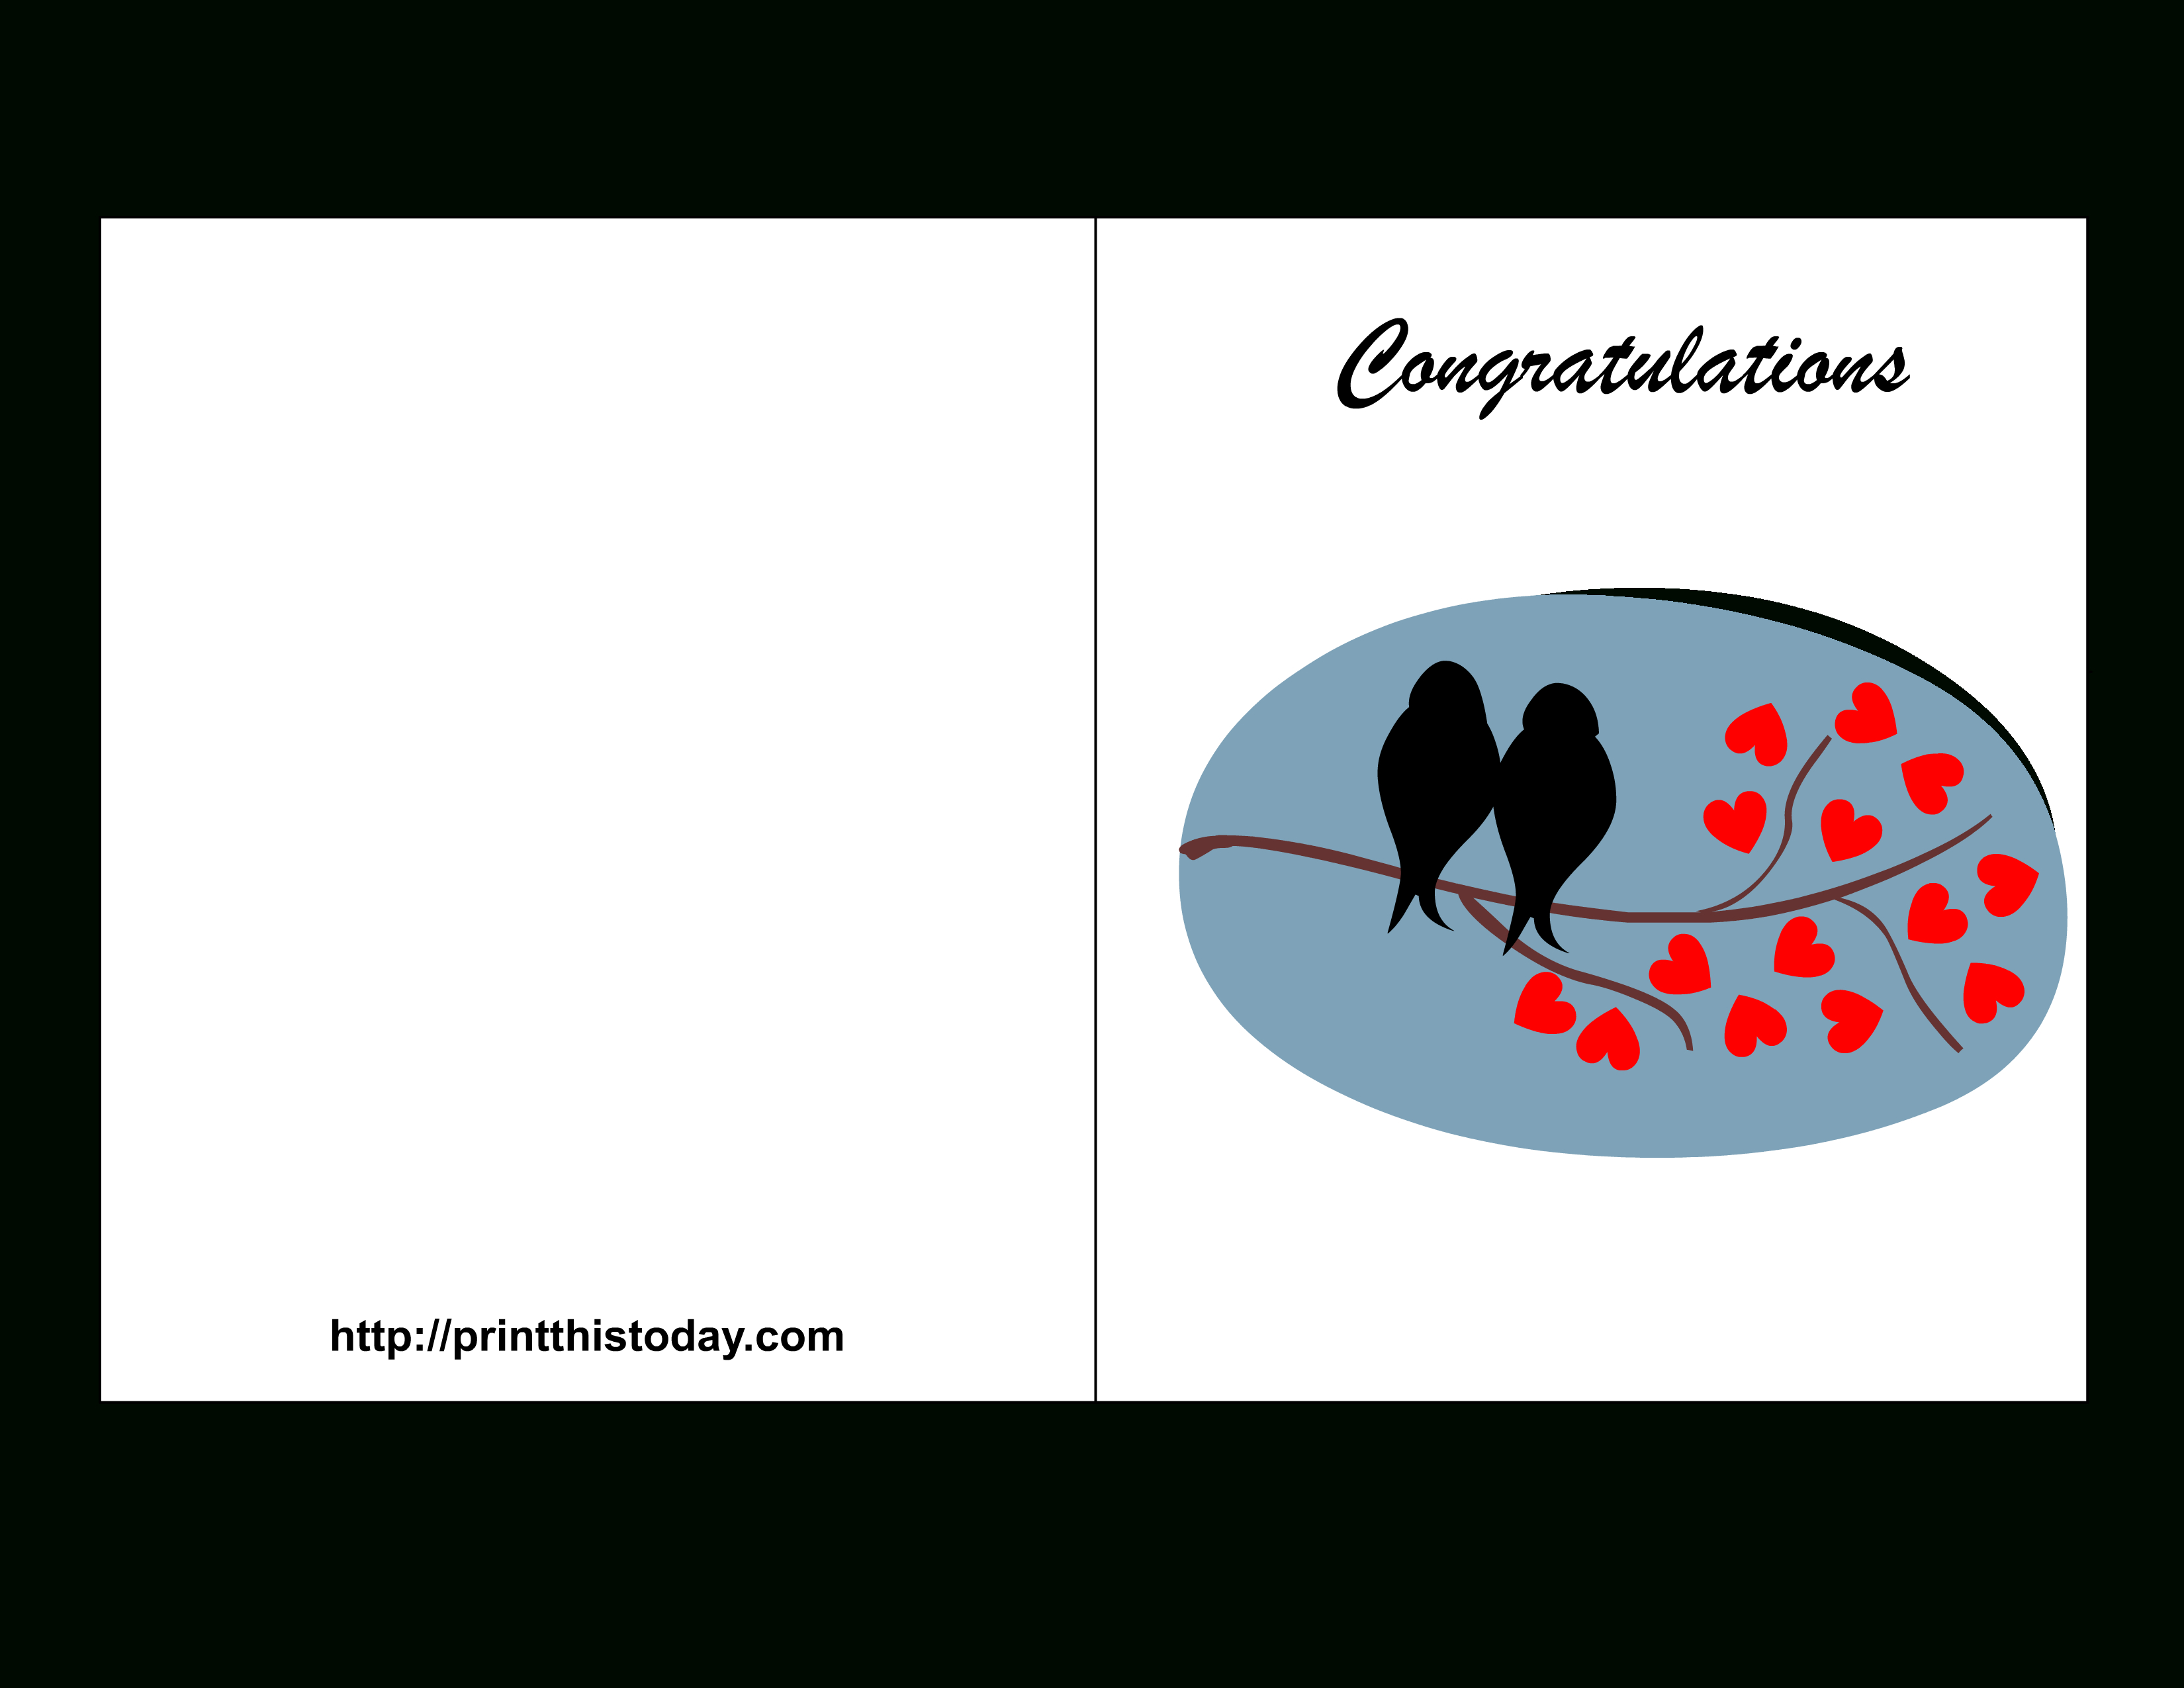 Congratulations Card To Print - Demir.iso-Consulting.co - Free Printable Congratulations Cards